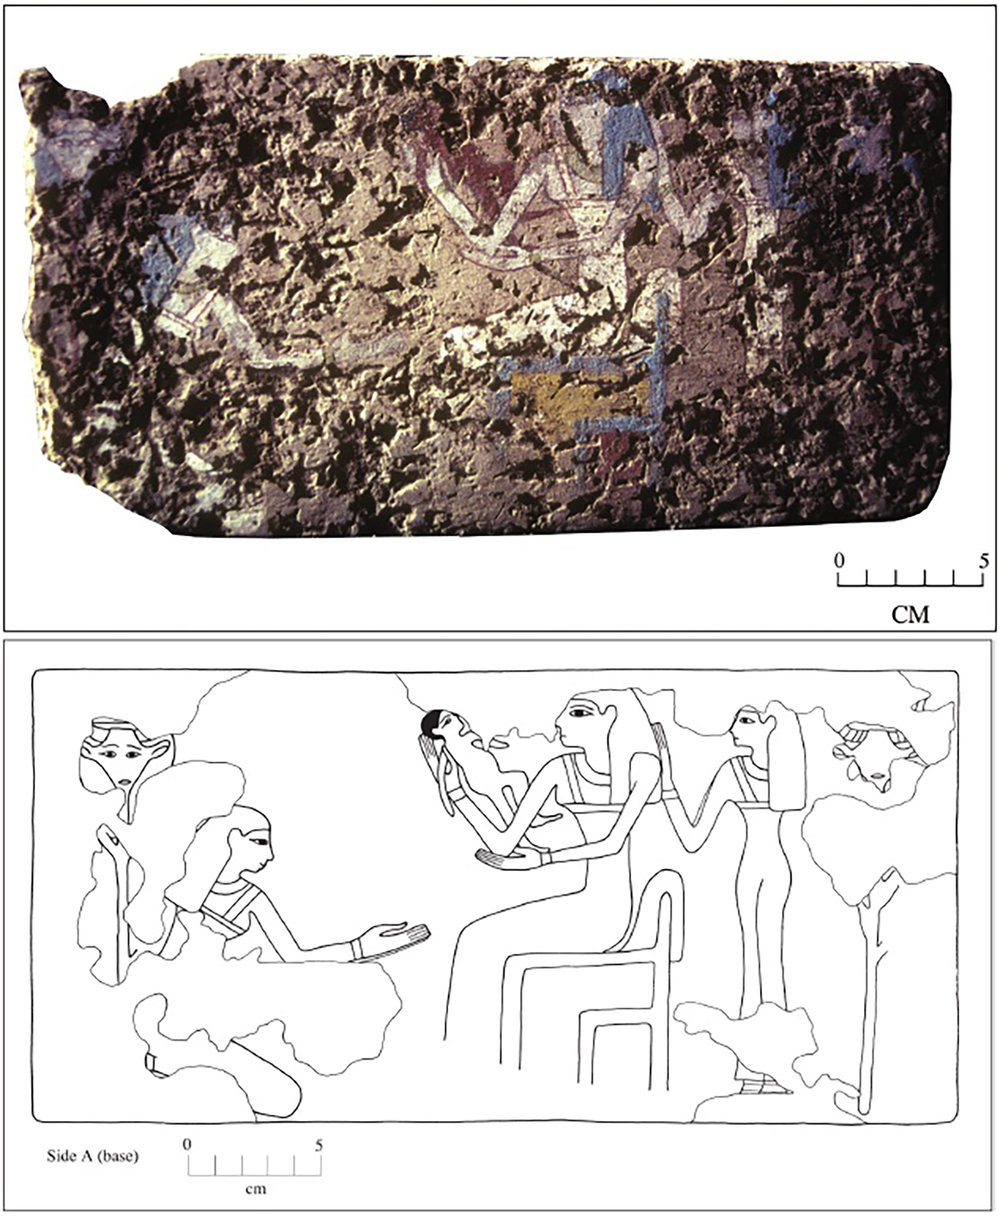 Figure 17: Reconstruction painting of the scene of the mother and newborn baby on the bottom of the brick. Female attendants who likely respresent goddesses flank the seated mother. Hathor-headed staffs frame the scene.